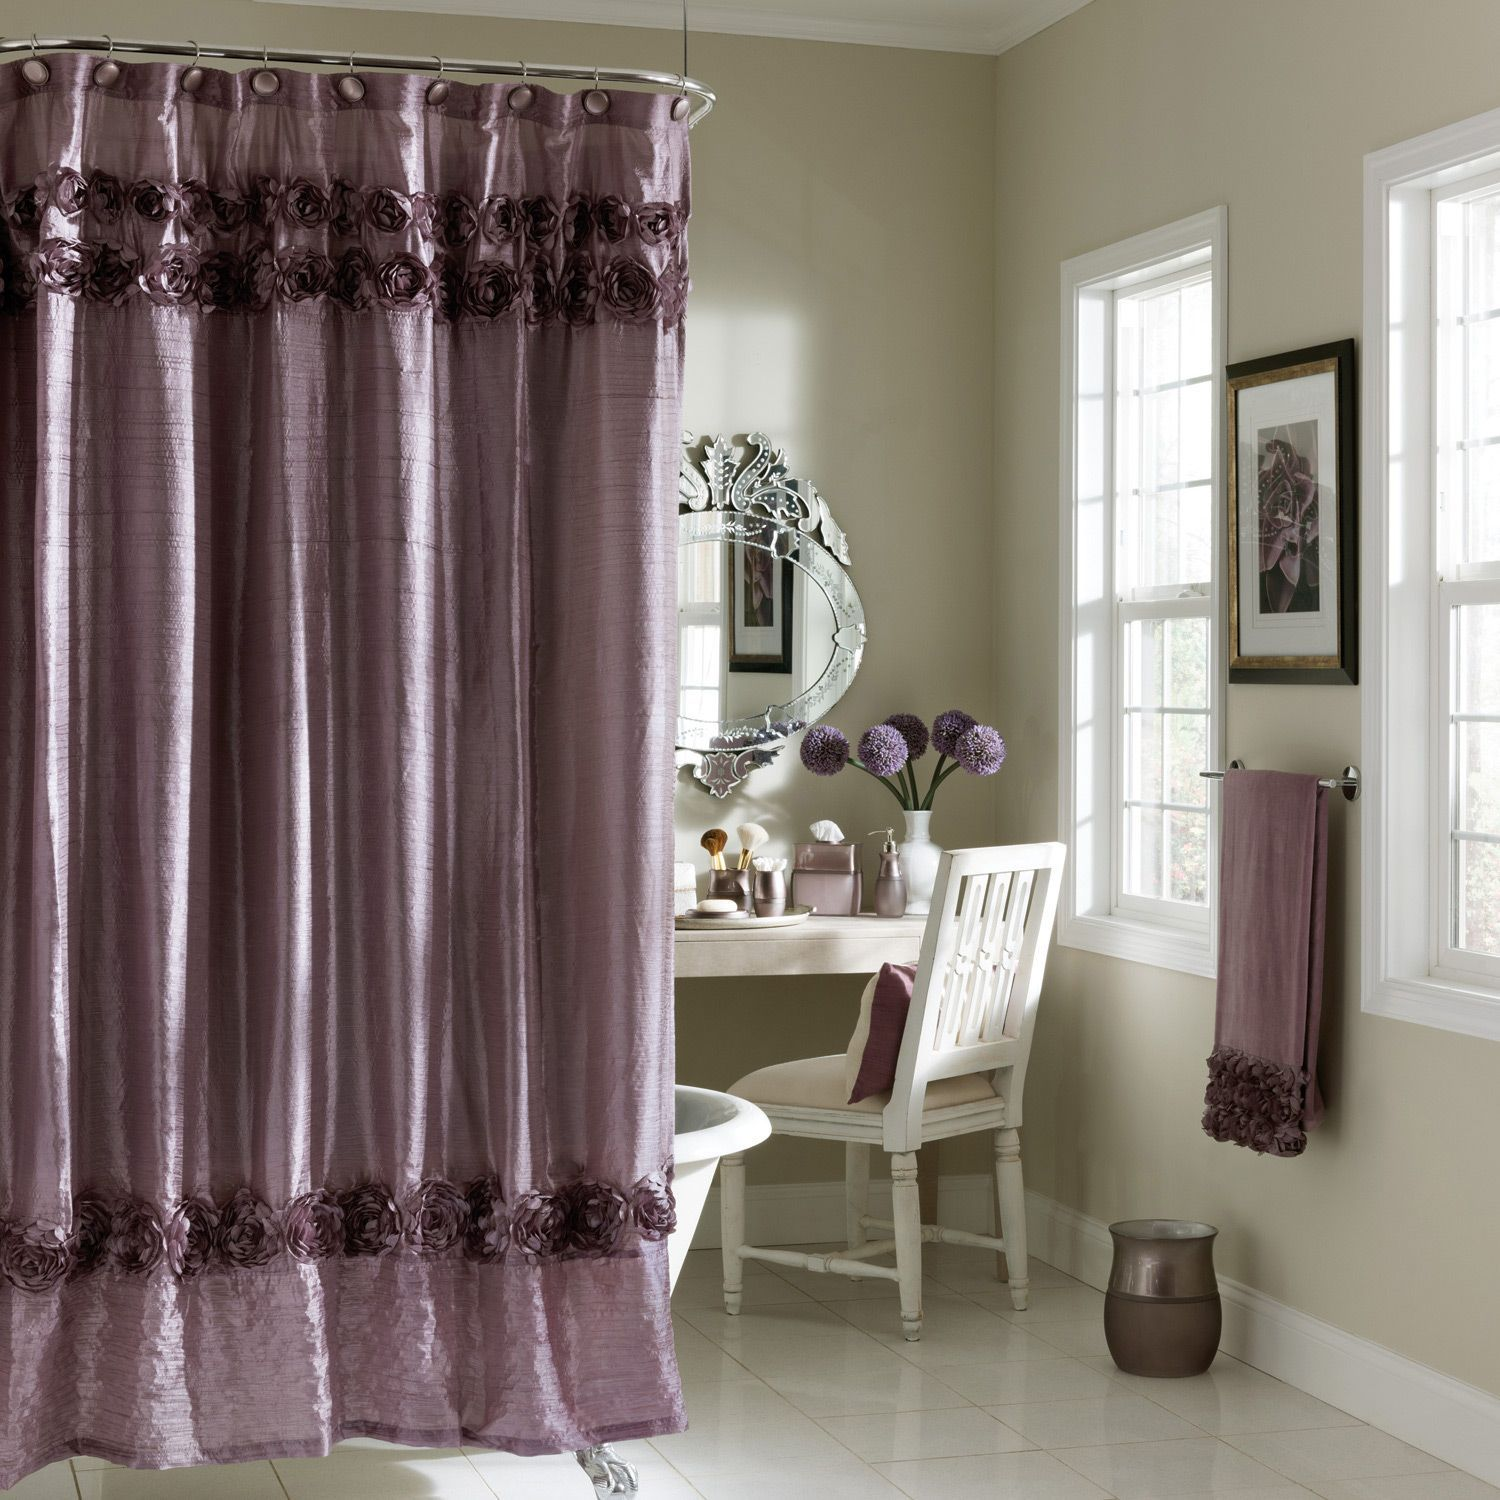 Uncategorized Beautiful Bathroom Curtains croscill curtains for renovating bathroom and living room drapery ideas